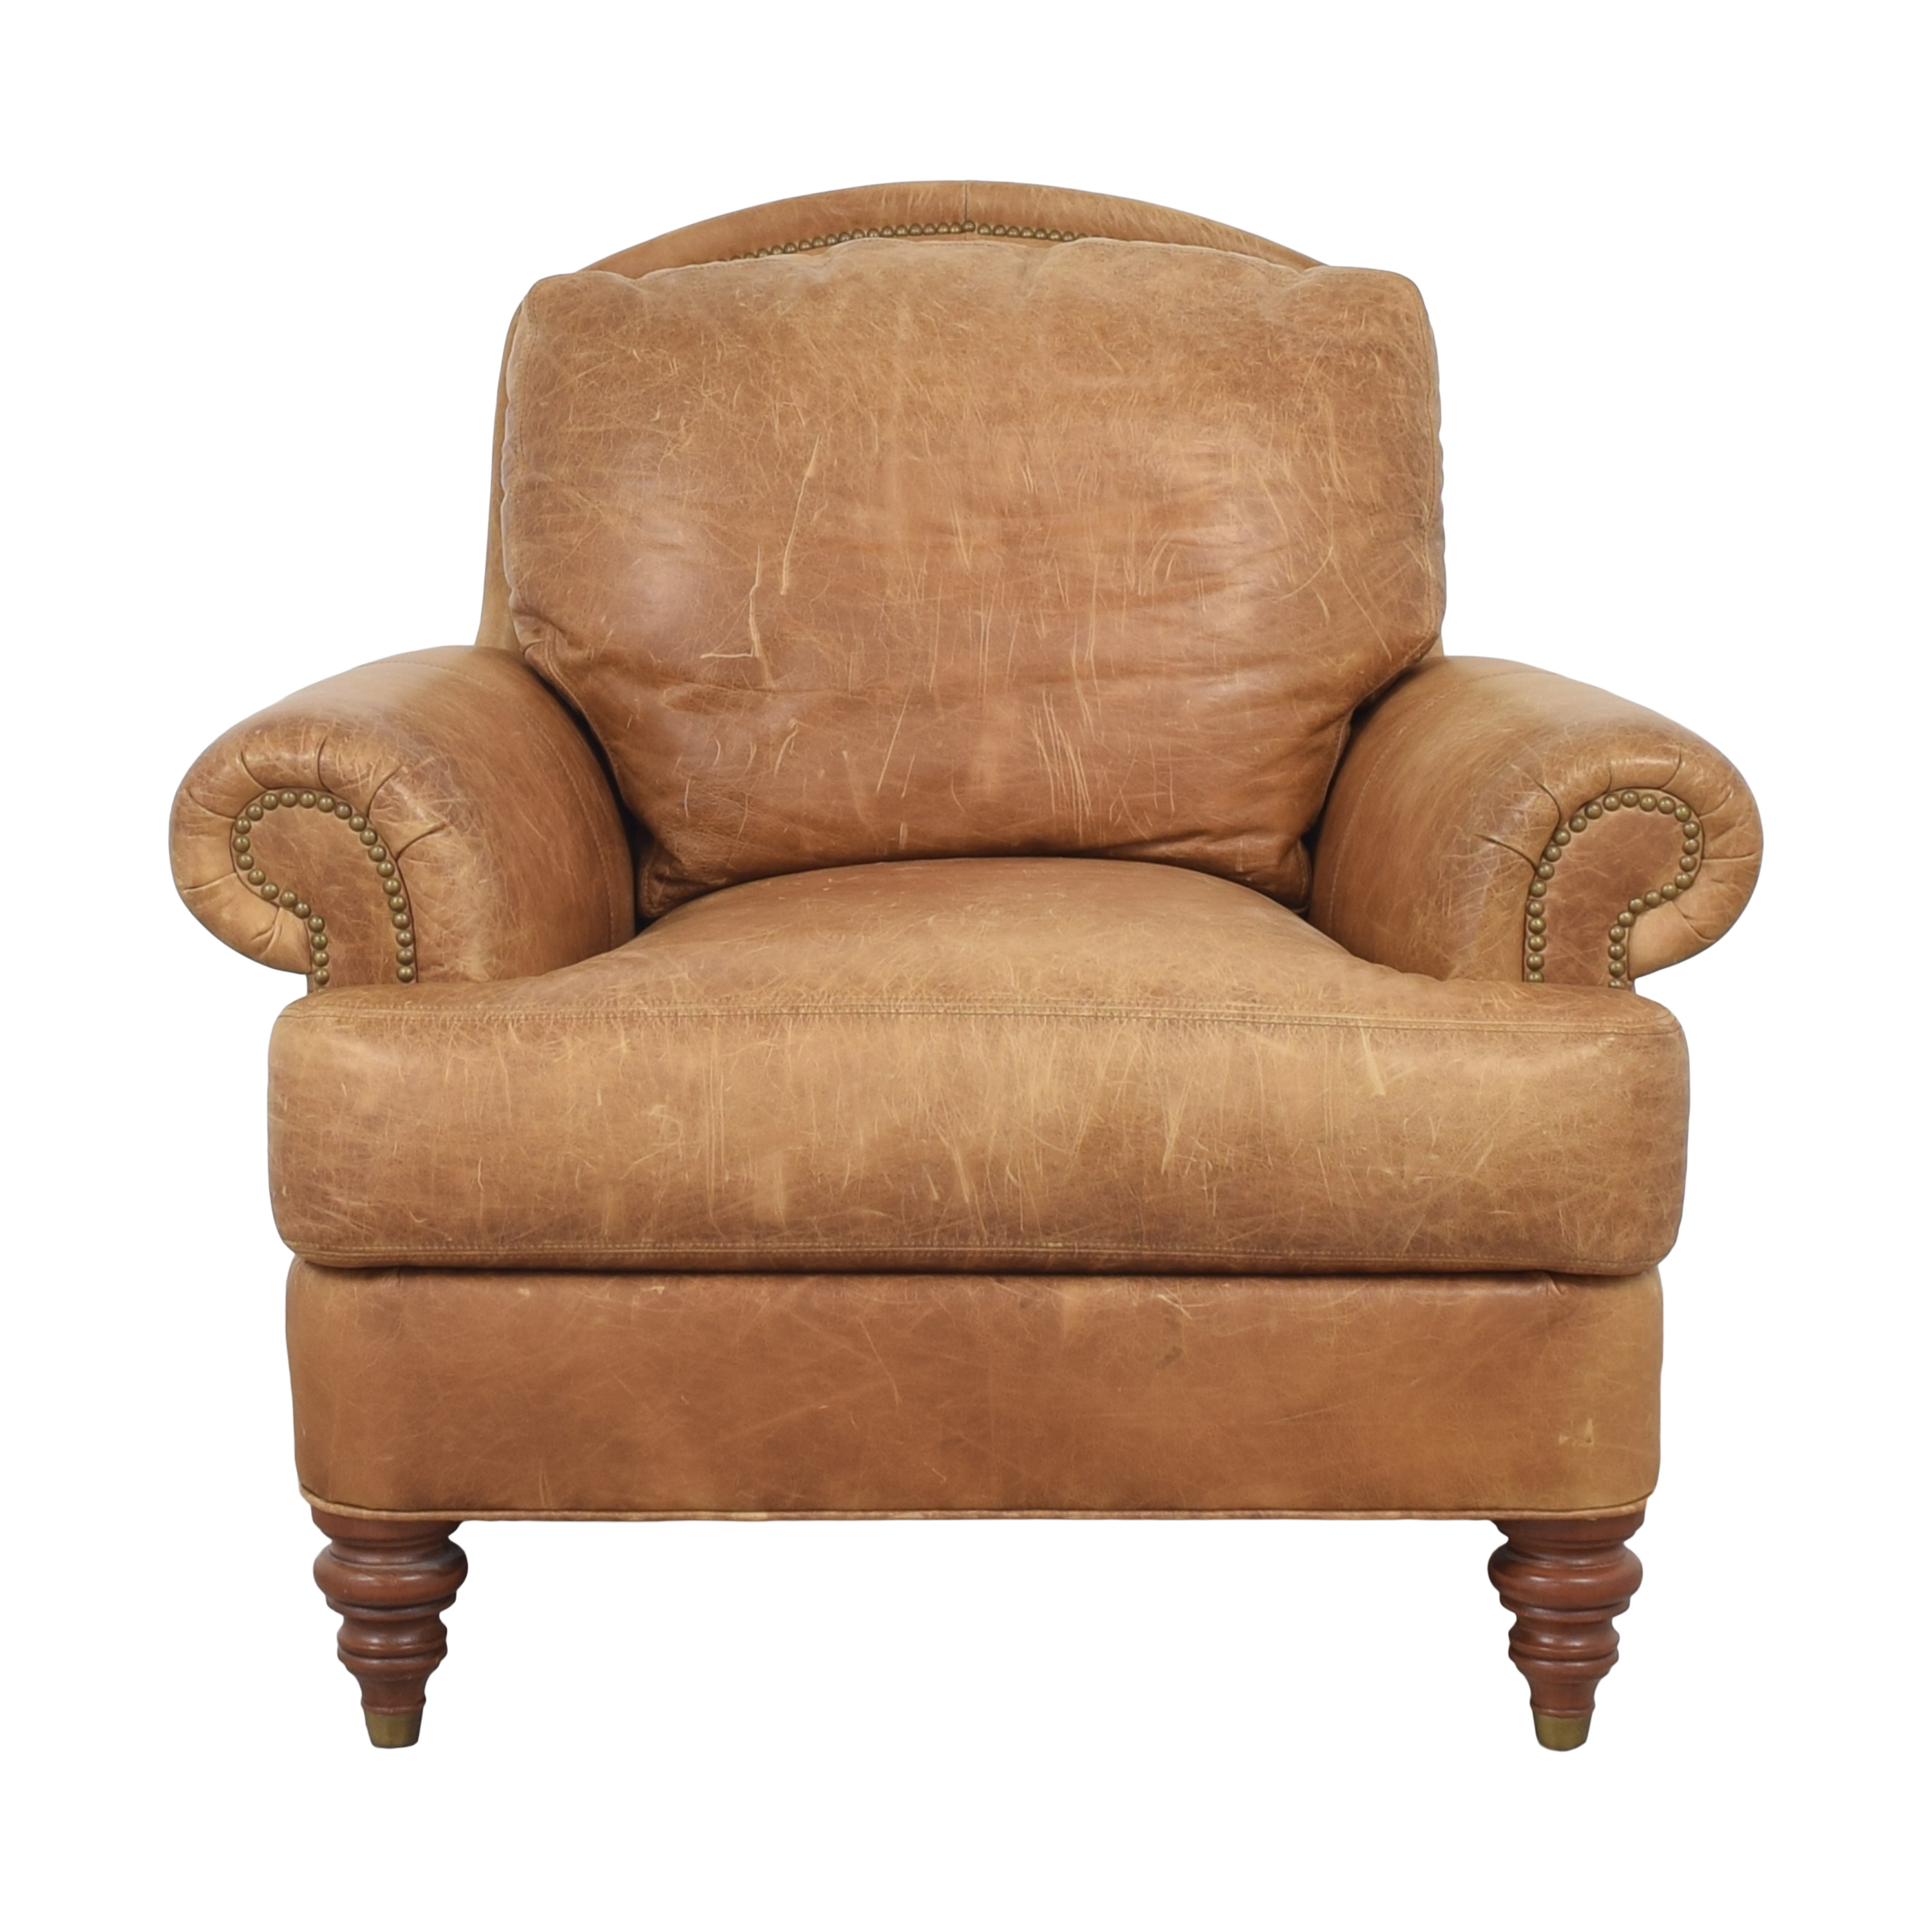 shop Ethan Allen Lounge Chair and Ottoman Ethan Allen Accent Chairs